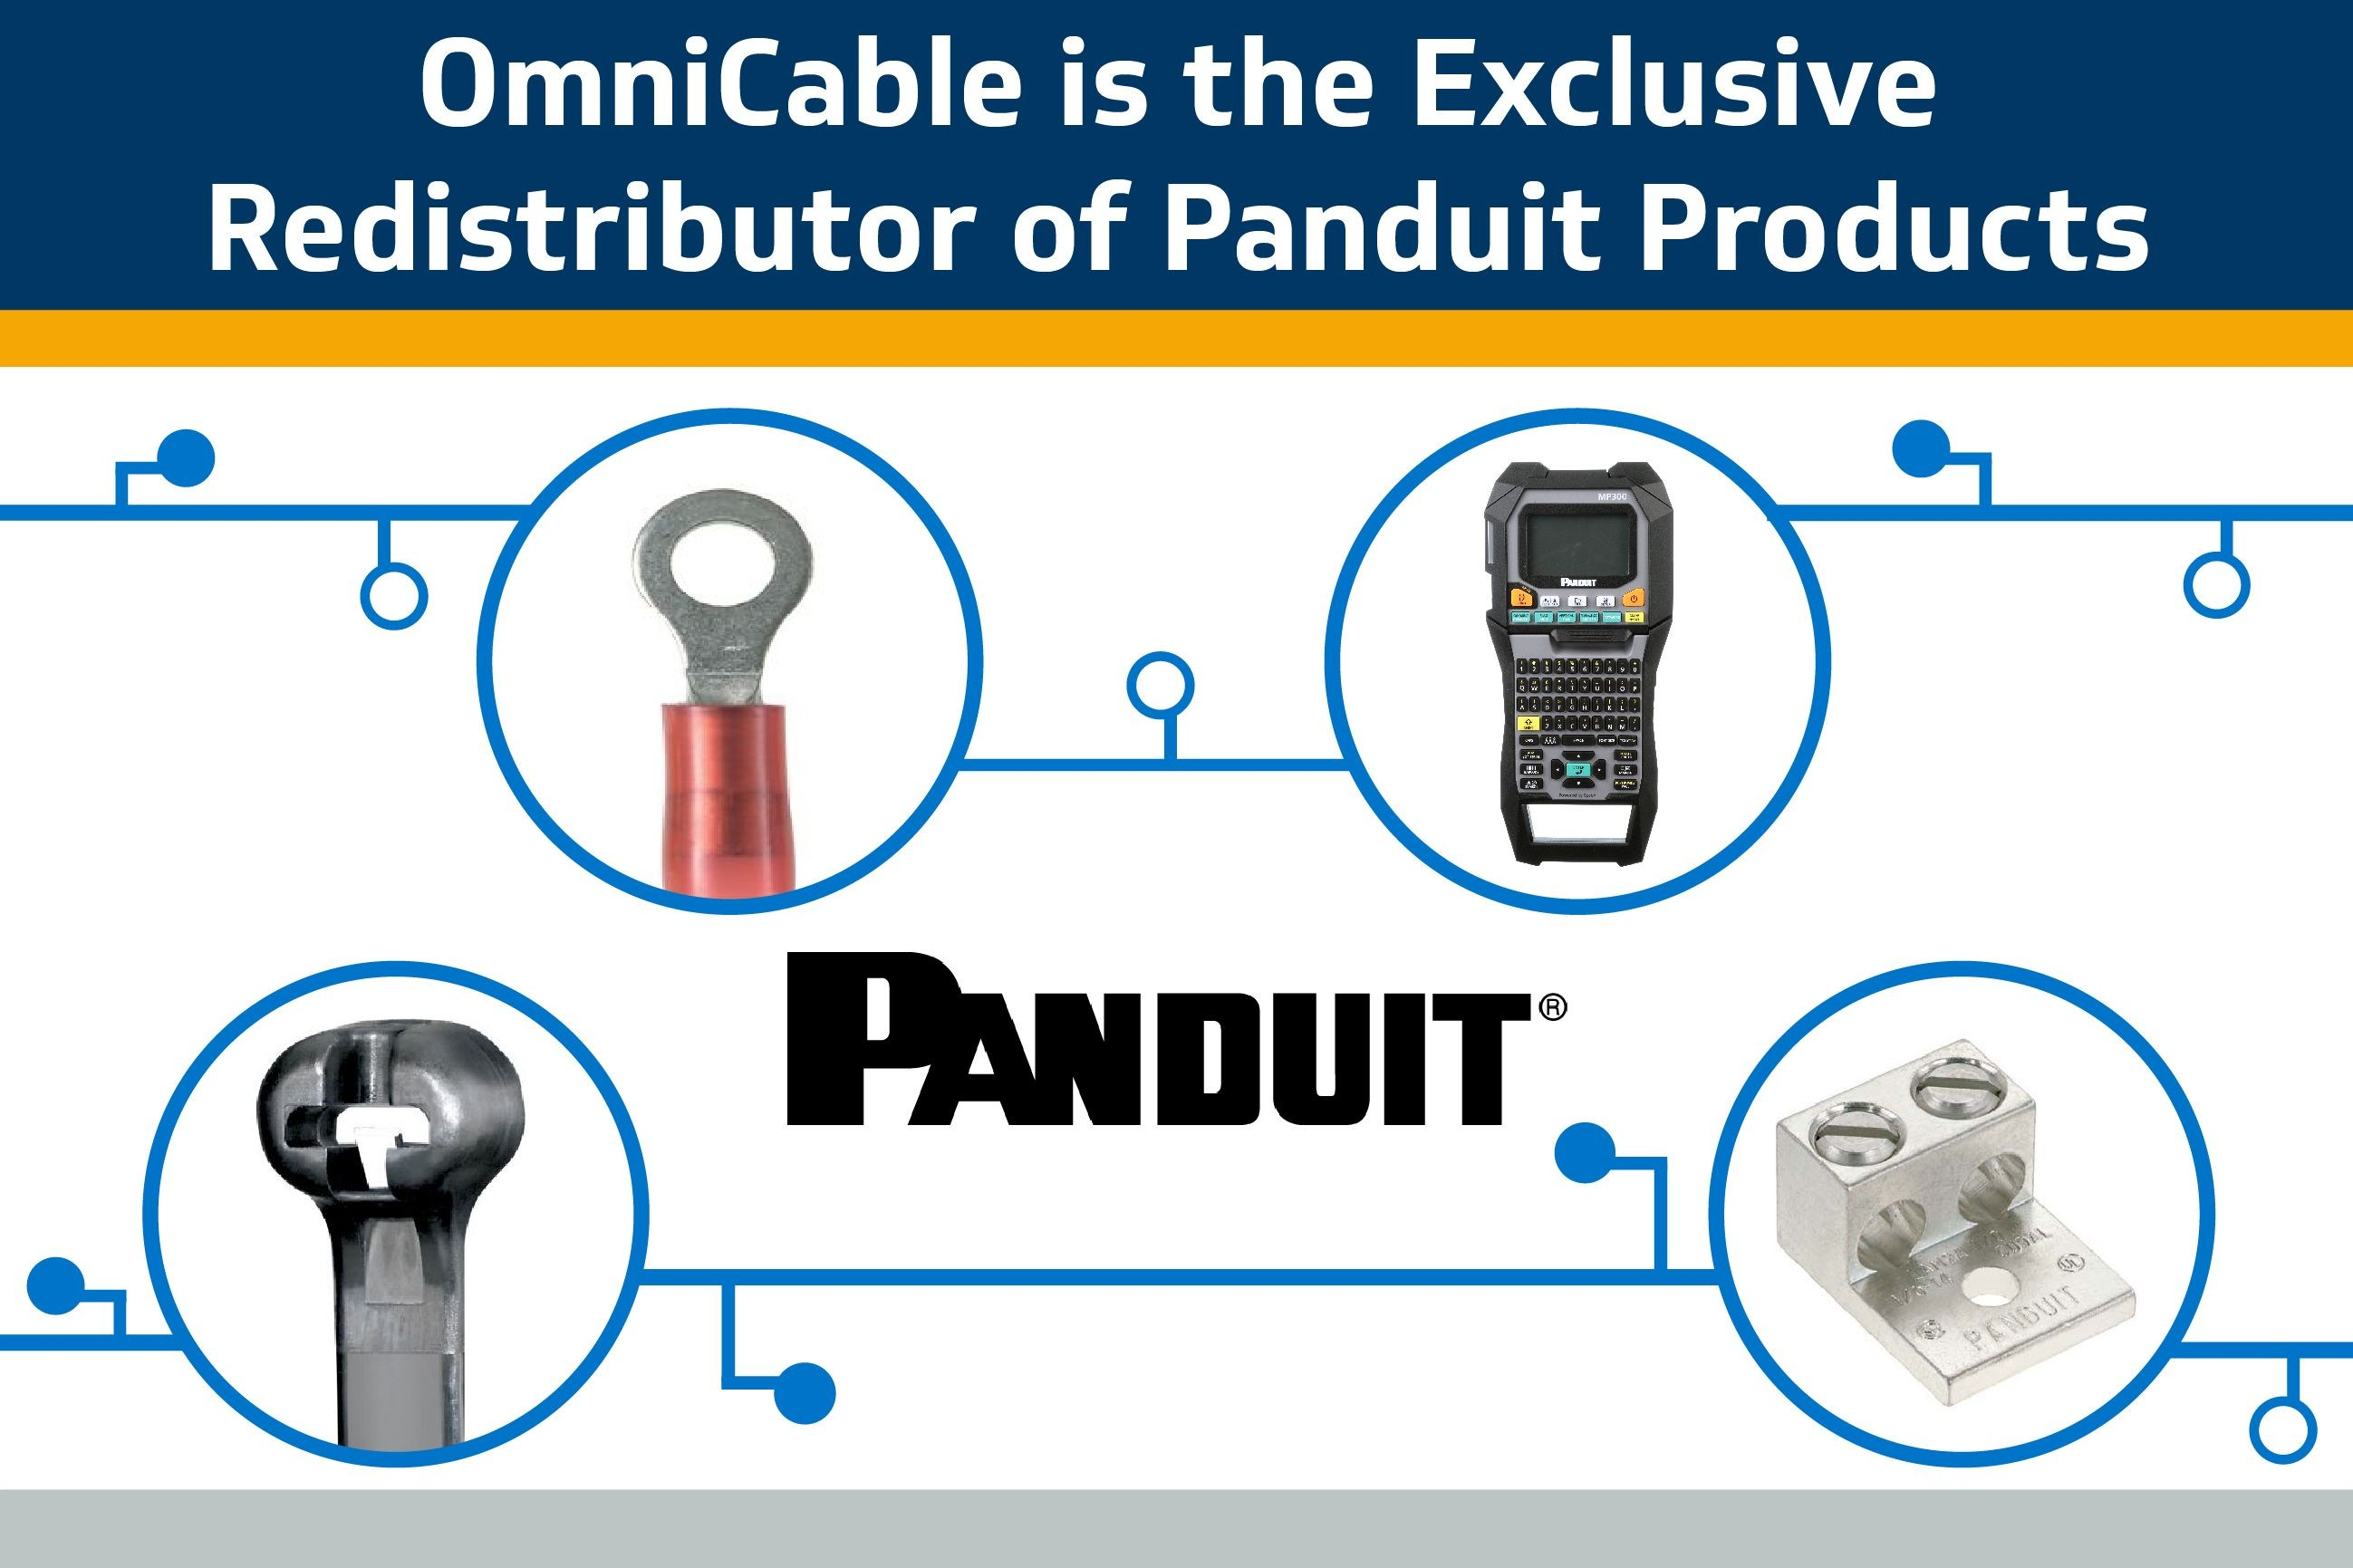 Learn More About Panduit